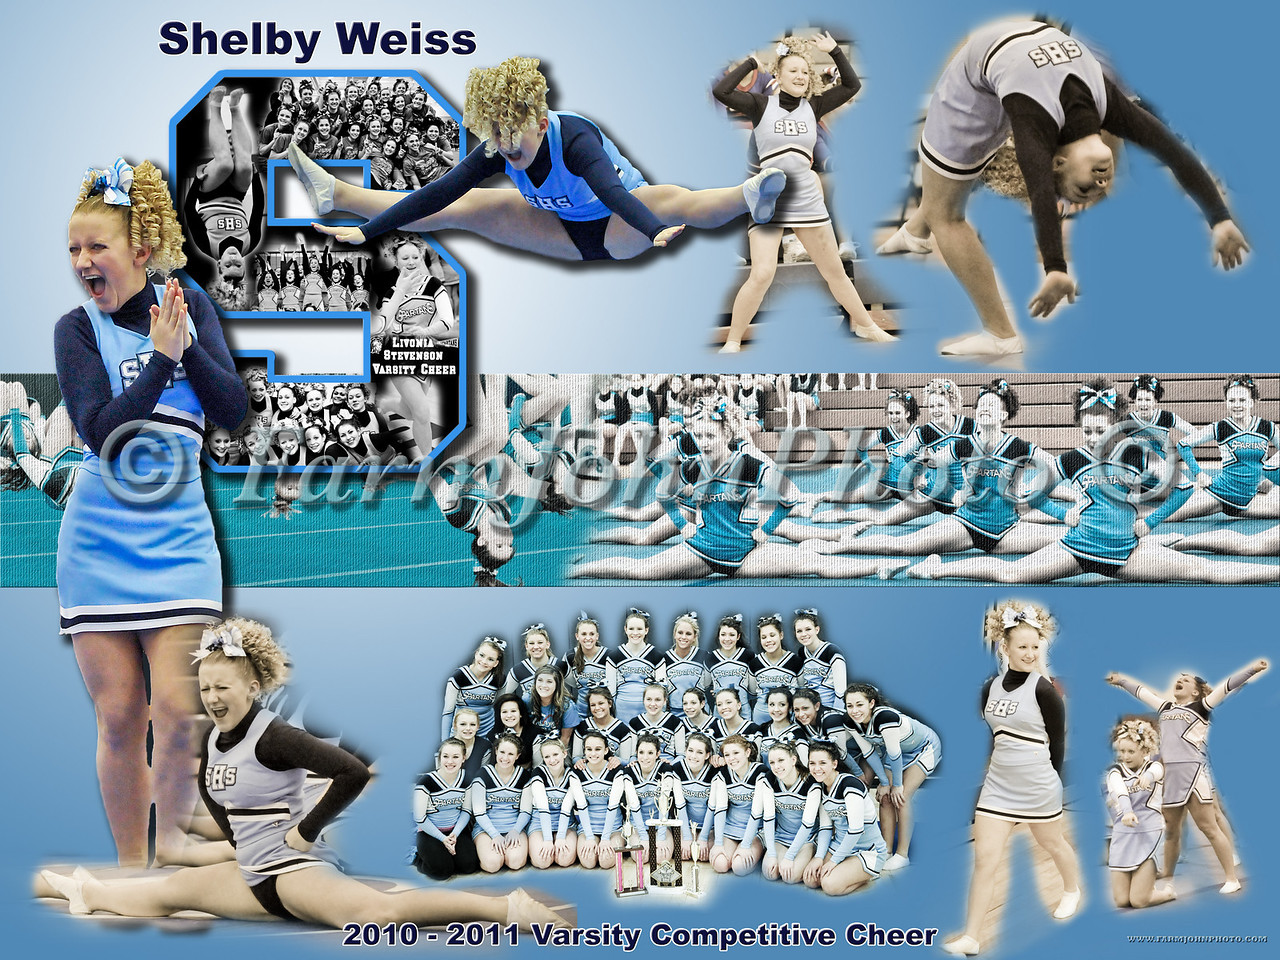 Shelby Weiss 24 x 18 Format Proof 3